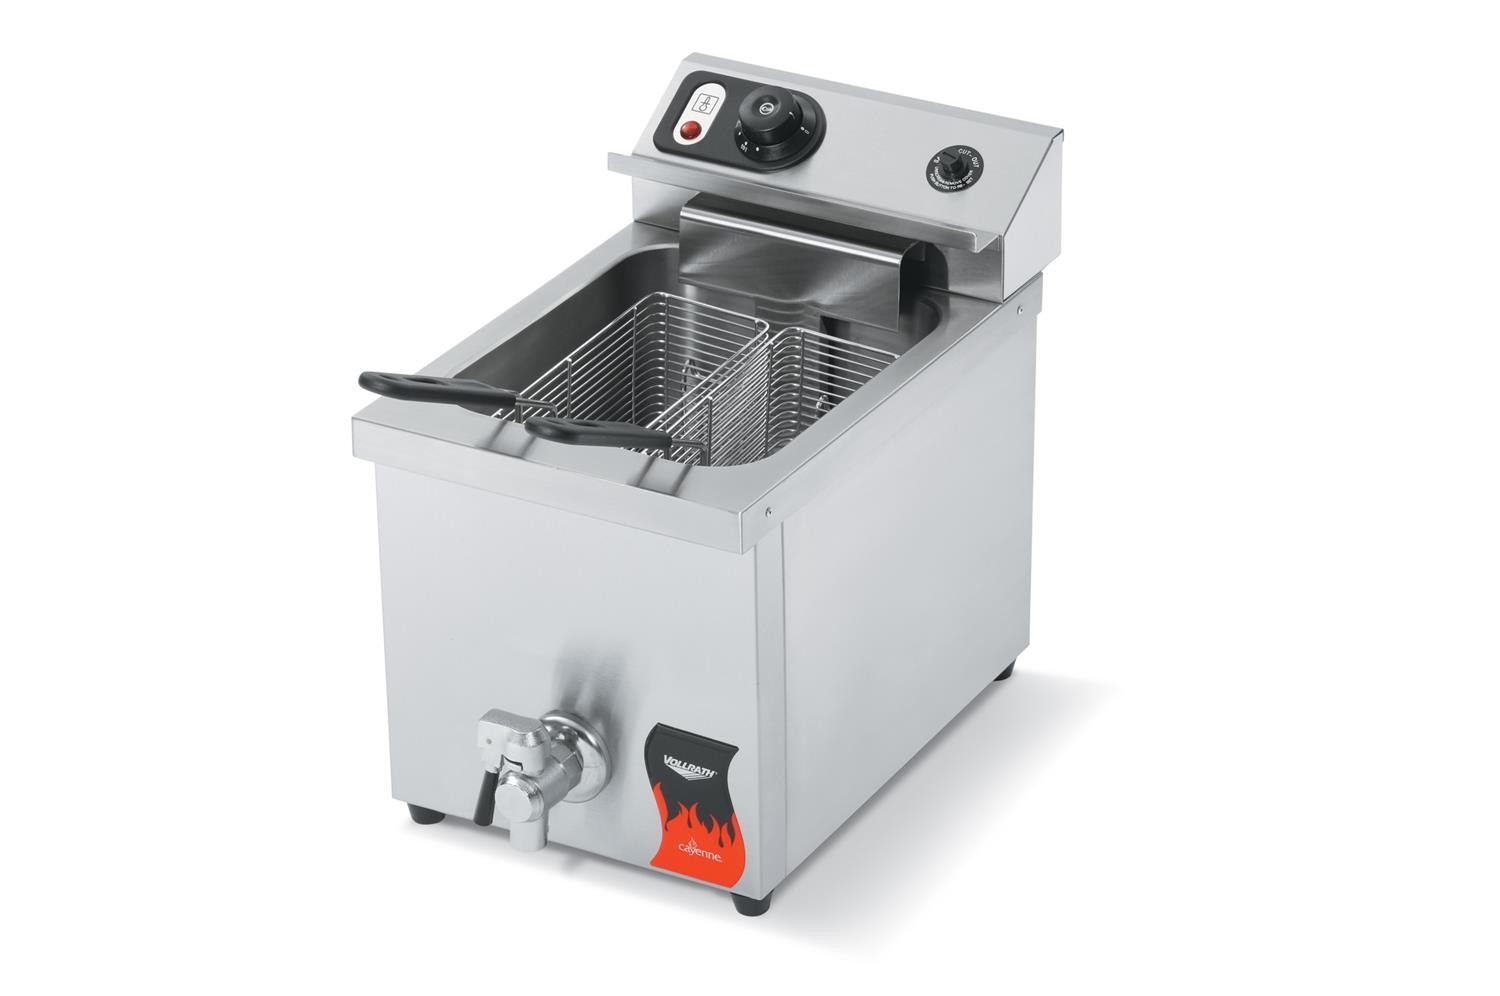 Vollrath 40709 Countertop Electric Fryer